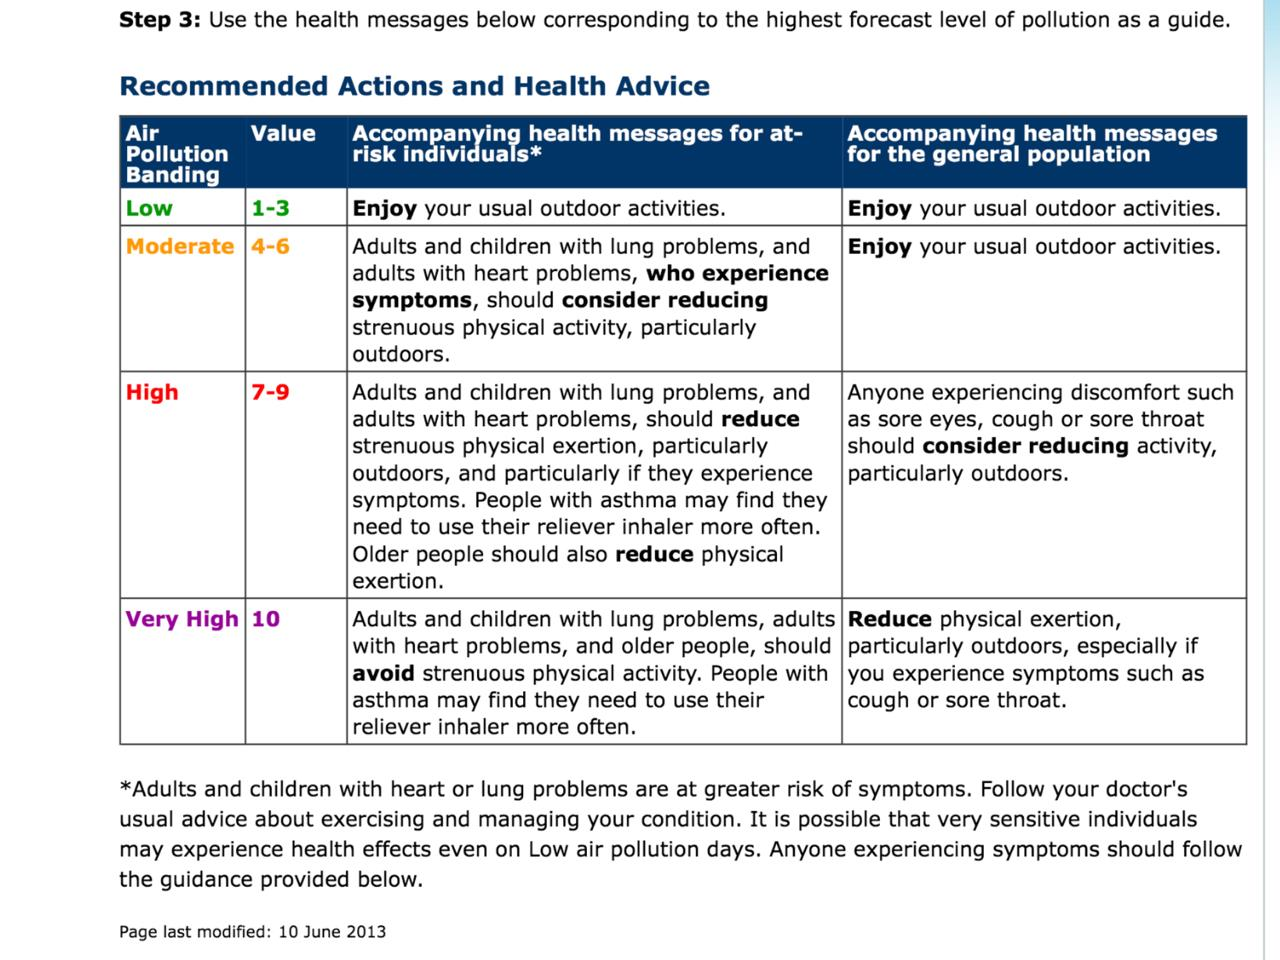 Exhibit 1 Defra Daily Air Quality Index health advice